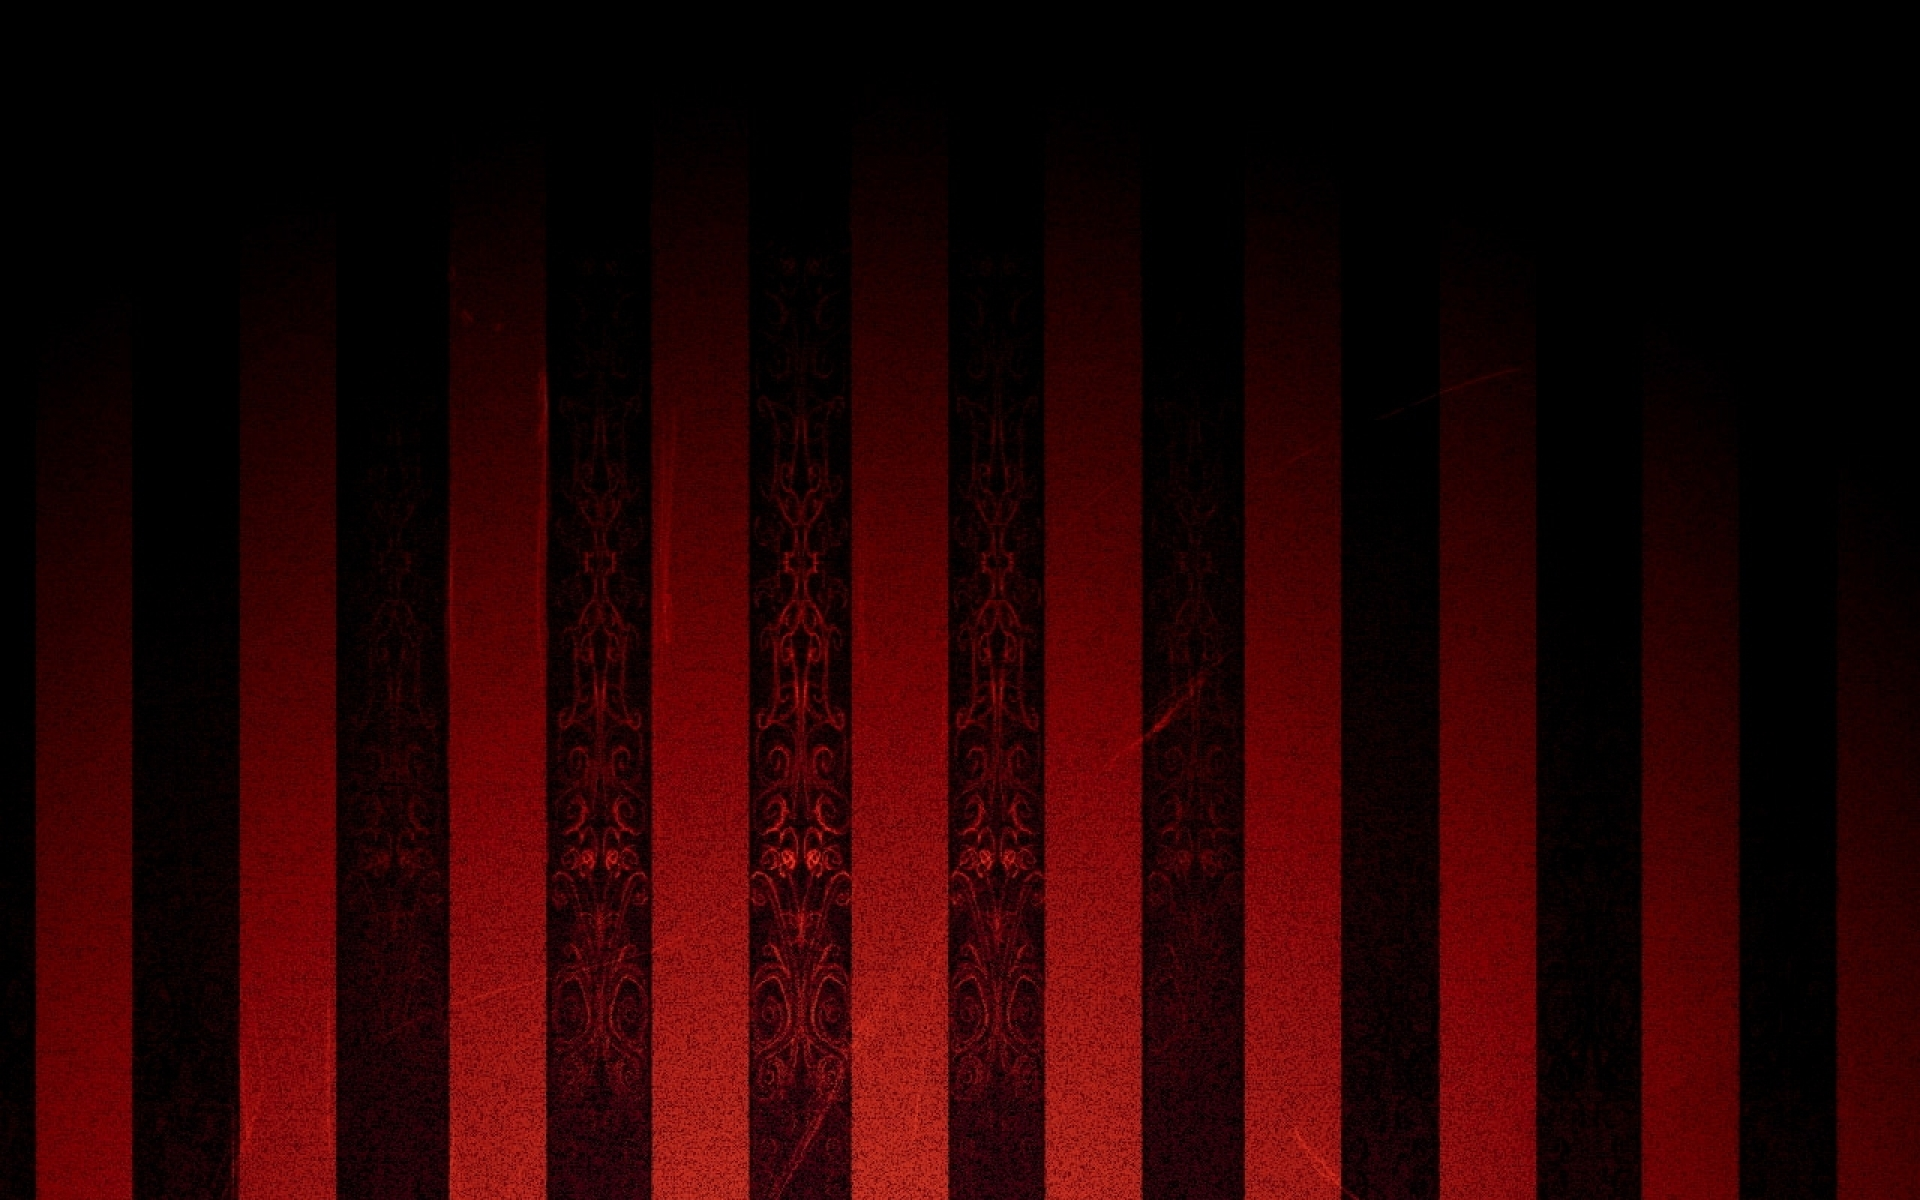 Wallpapers HD Black And Red Group  1920x1200